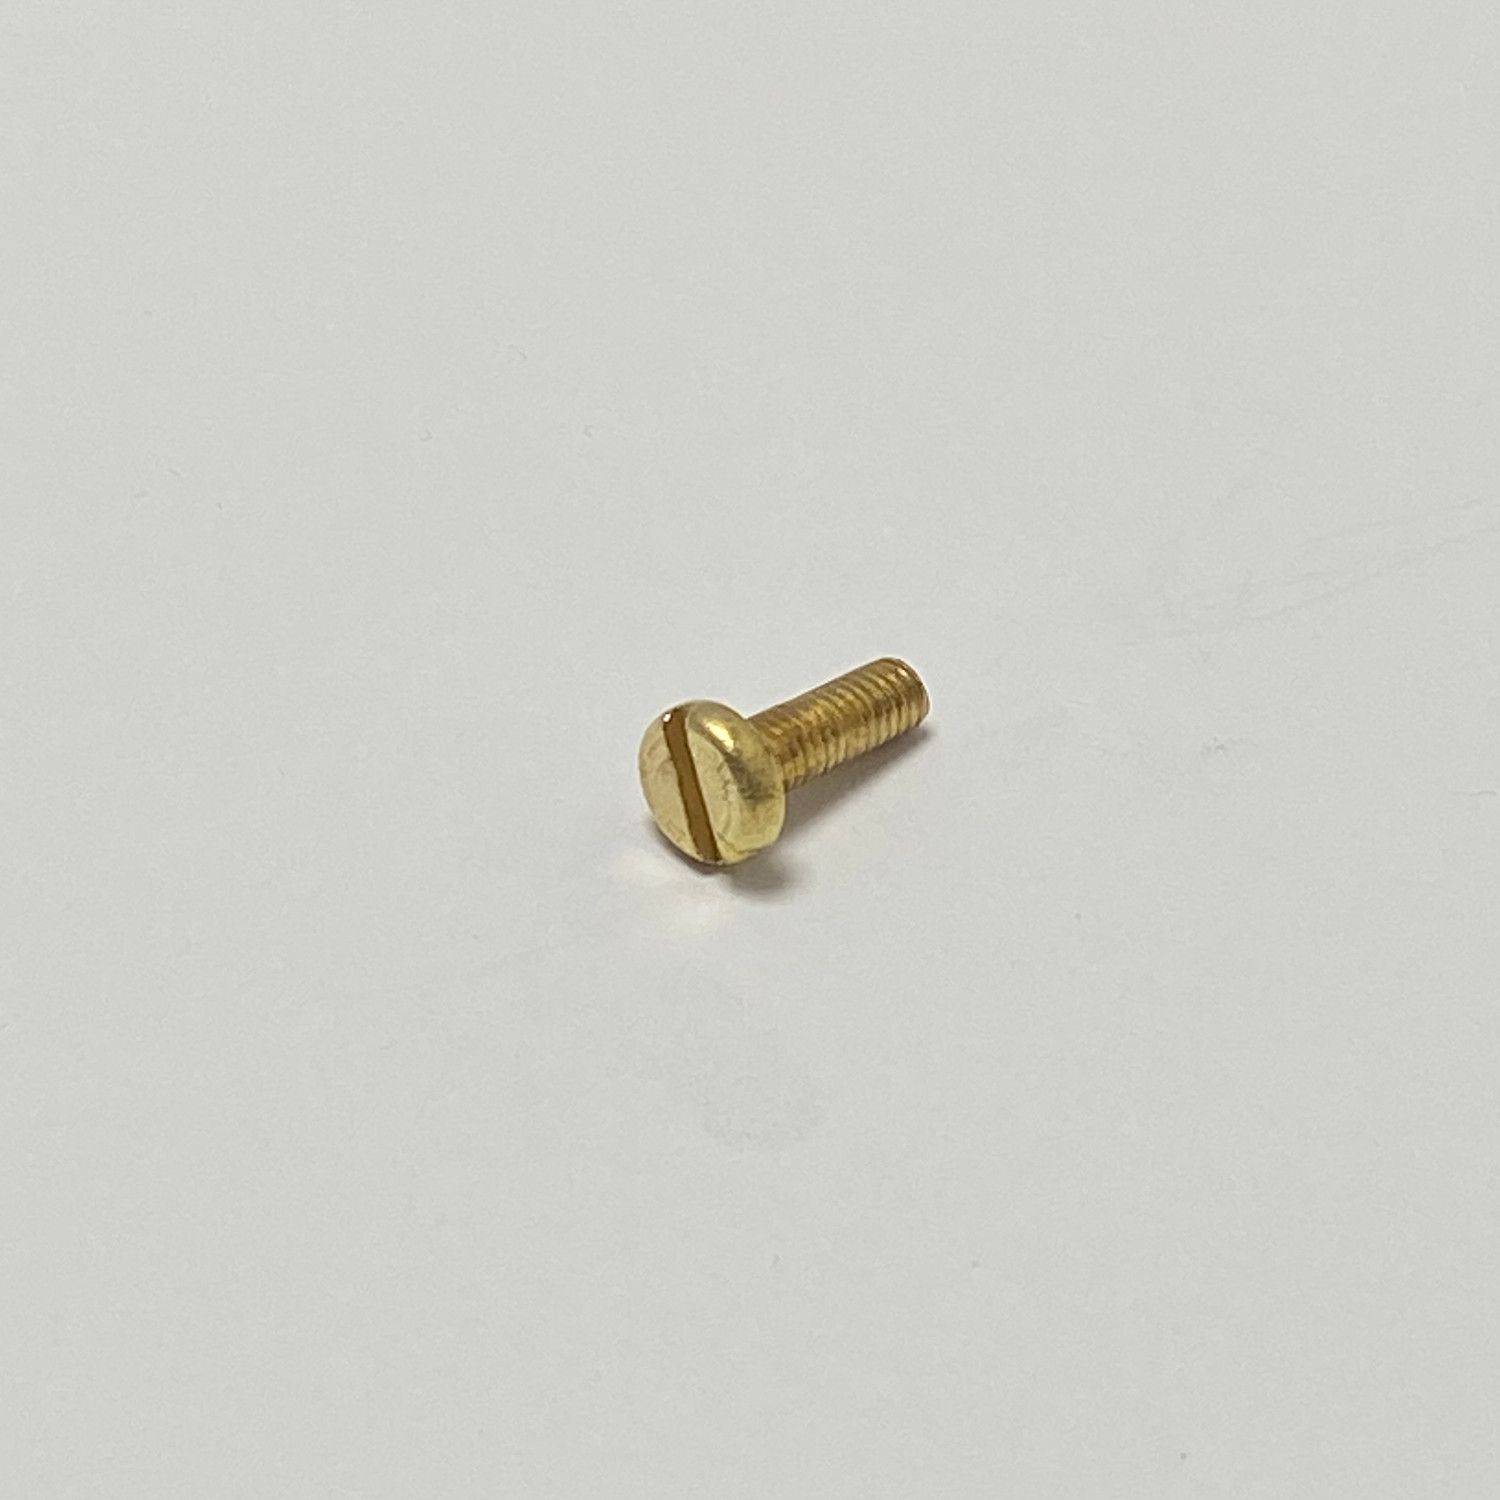 M5 X 40 BRASS SLOTTED CHEESE SCREWS